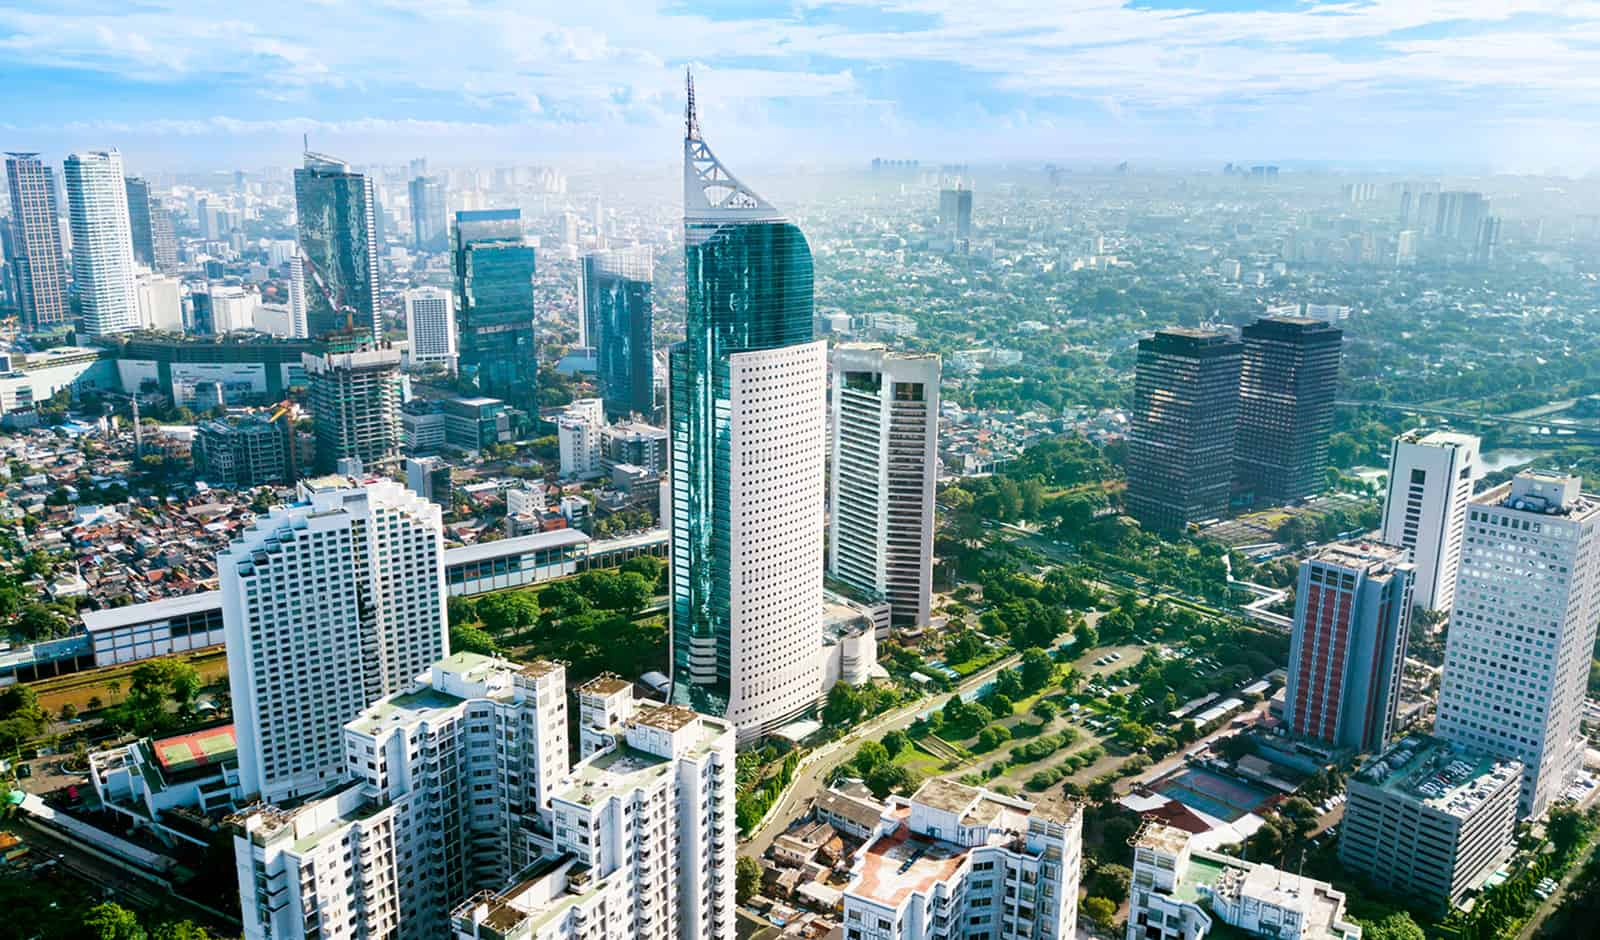 Top-Things-to-do-in-Jakarta-to-Get-the-Real-Essence-of-the-City-main-image-skyview